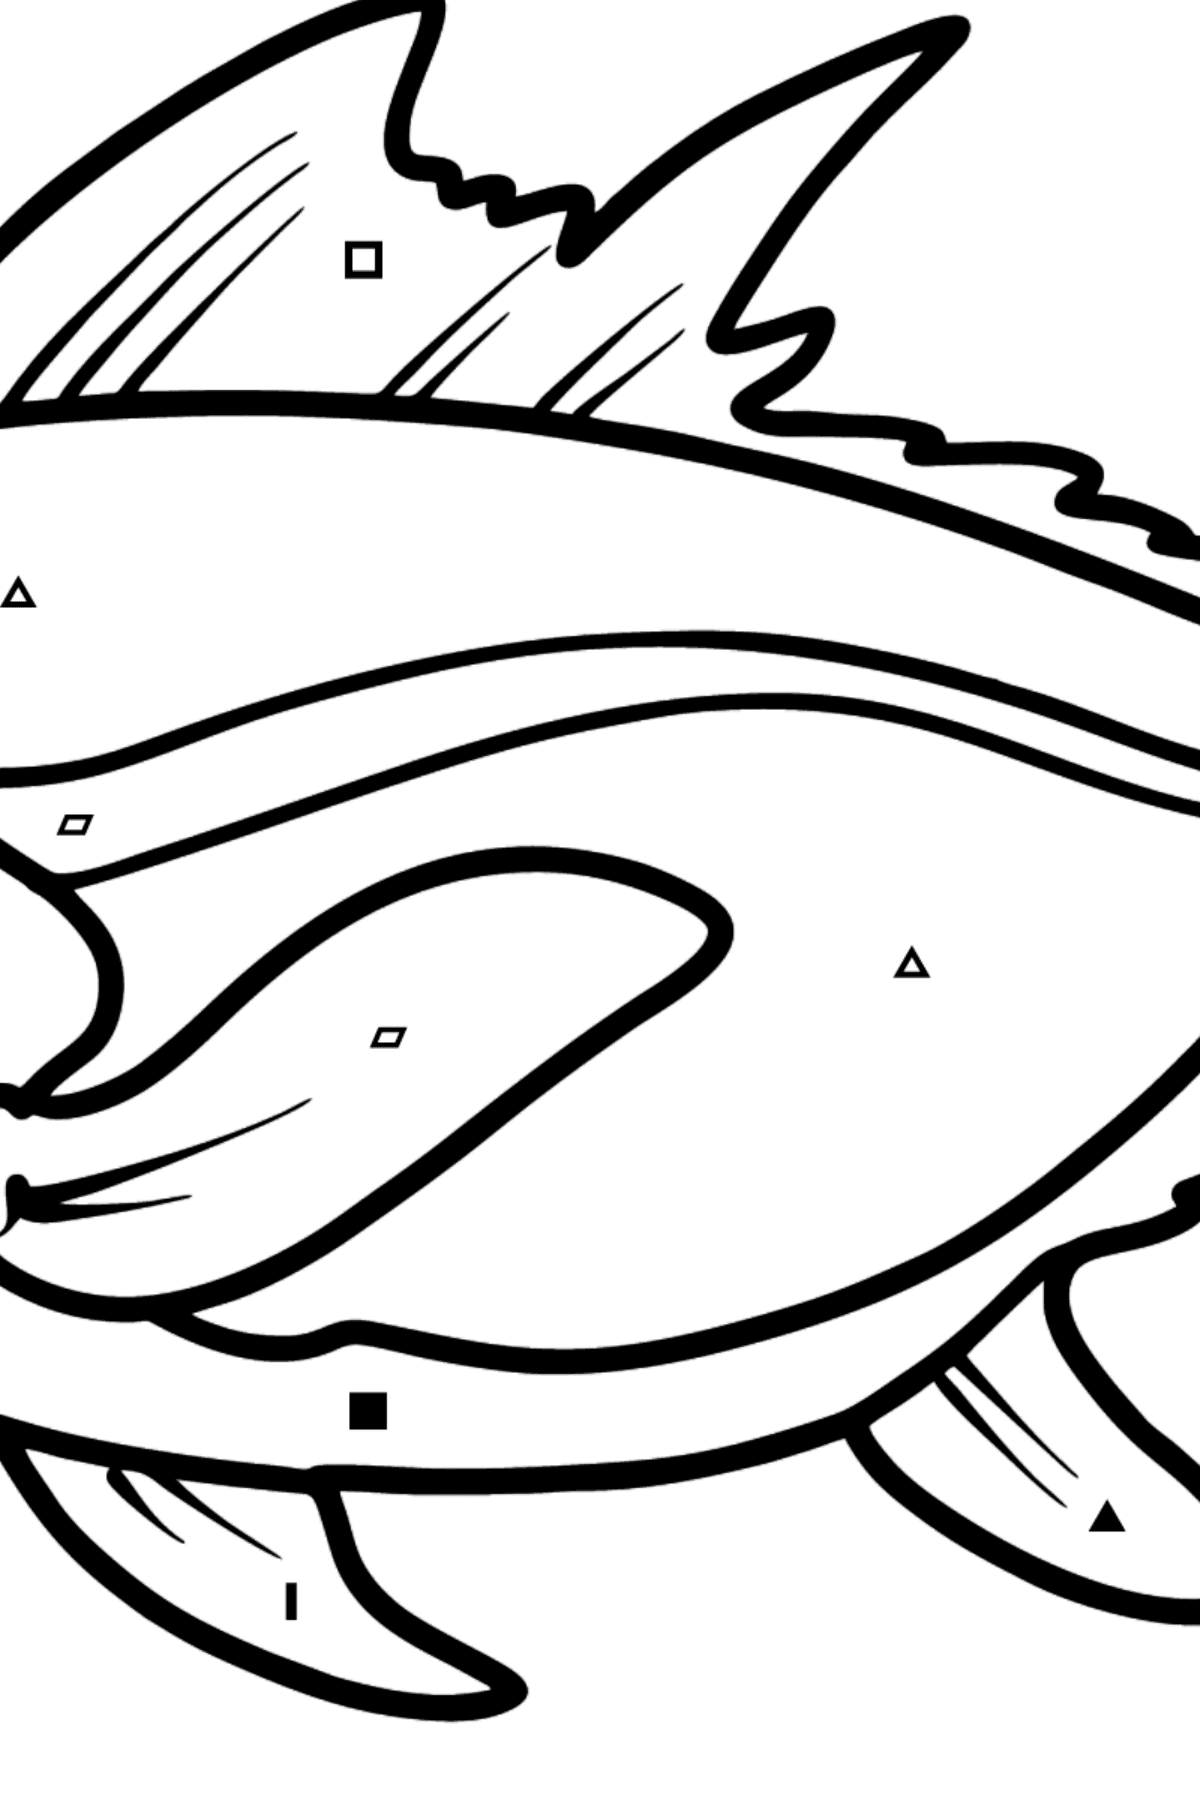 Tuna coloring page - Coloring by Symbols and Geometric Shapes for Kids